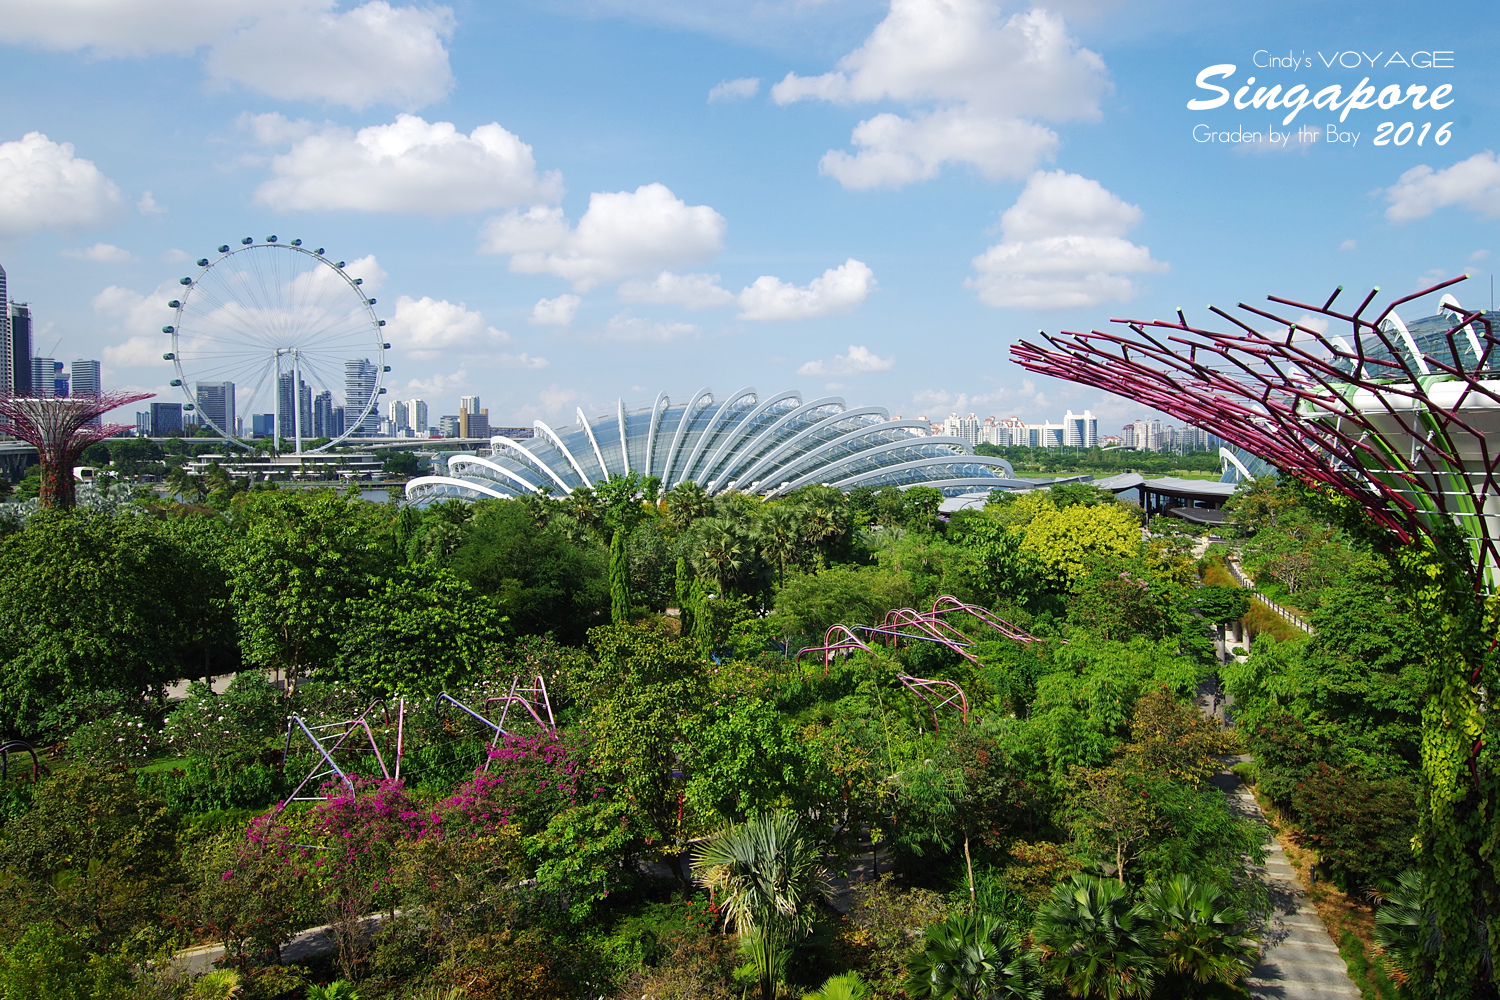 2016-Garden By the Bay-13.jpg